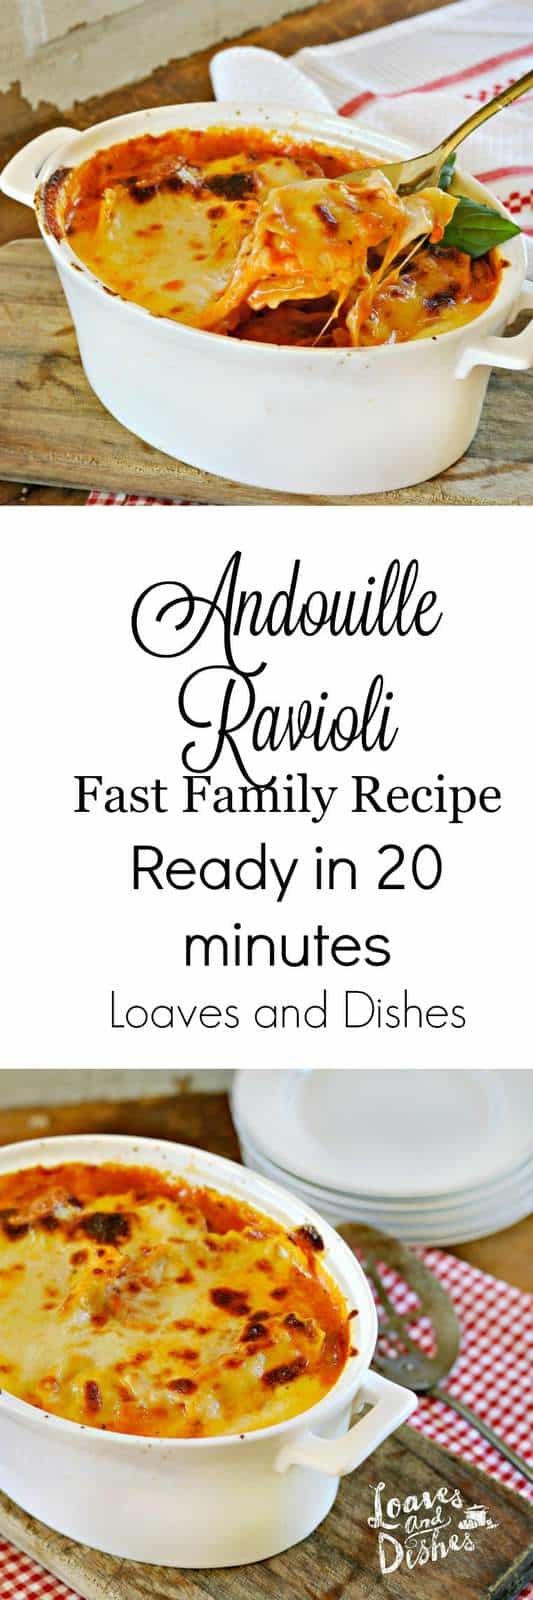 Super Fast and Extra Yummy. Fast Family Recipe. Ready in only 20 minutes. Cheese Pulls and pasta. What could be better?